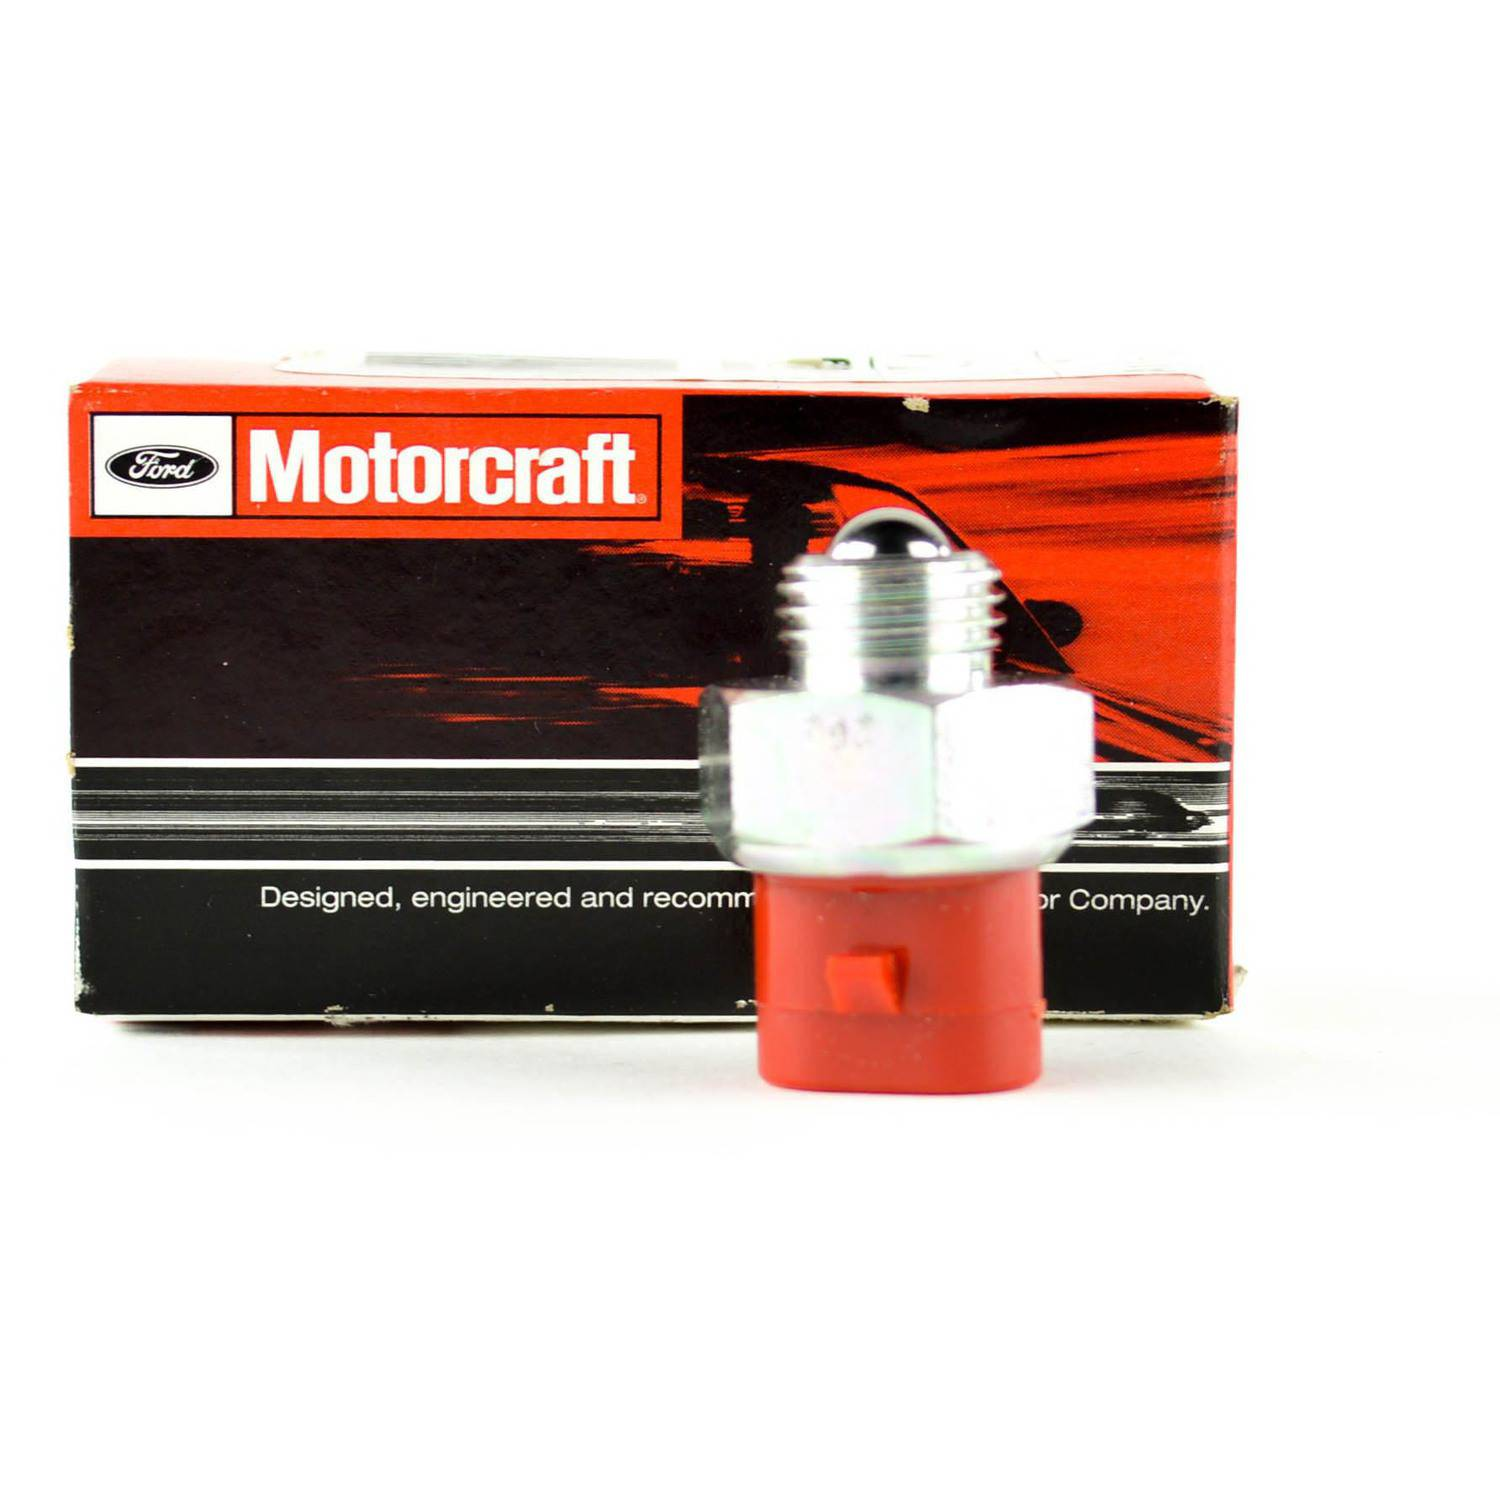 Engine Coolant Thermostat Housing Motorcraft RH-214